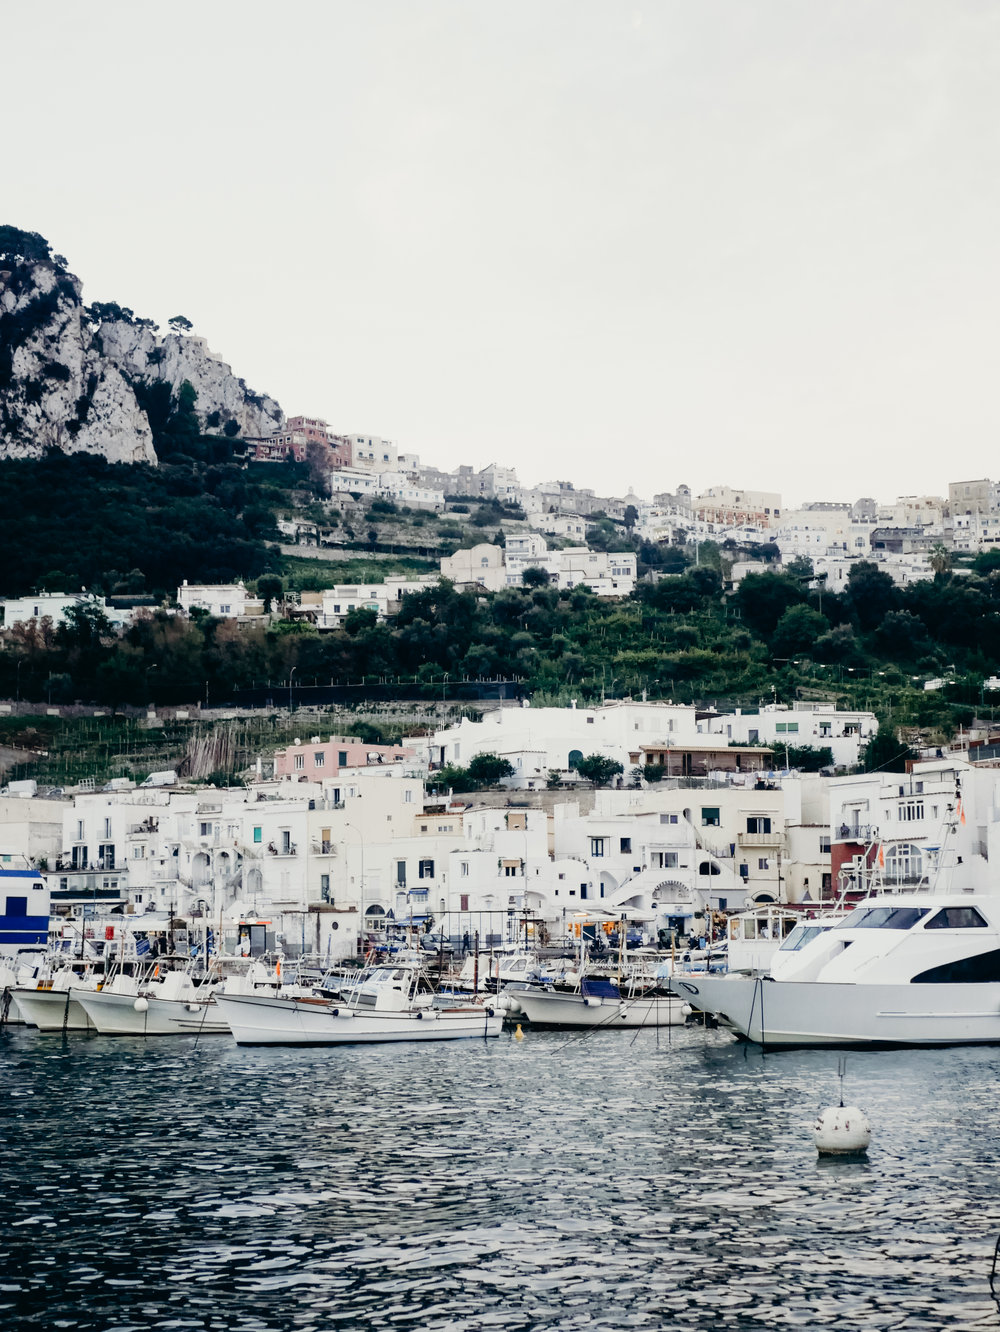 Capri Travel Guide - Everything You Should Do On A Day Visit